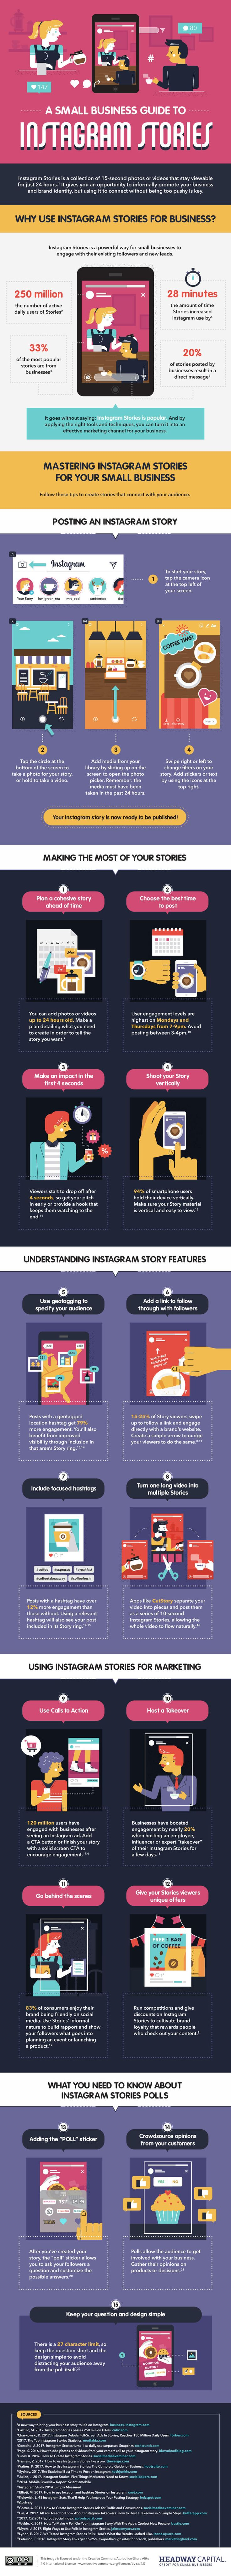 How Small Businesses Can Benefit from Creating Instagram Stories - Infographic